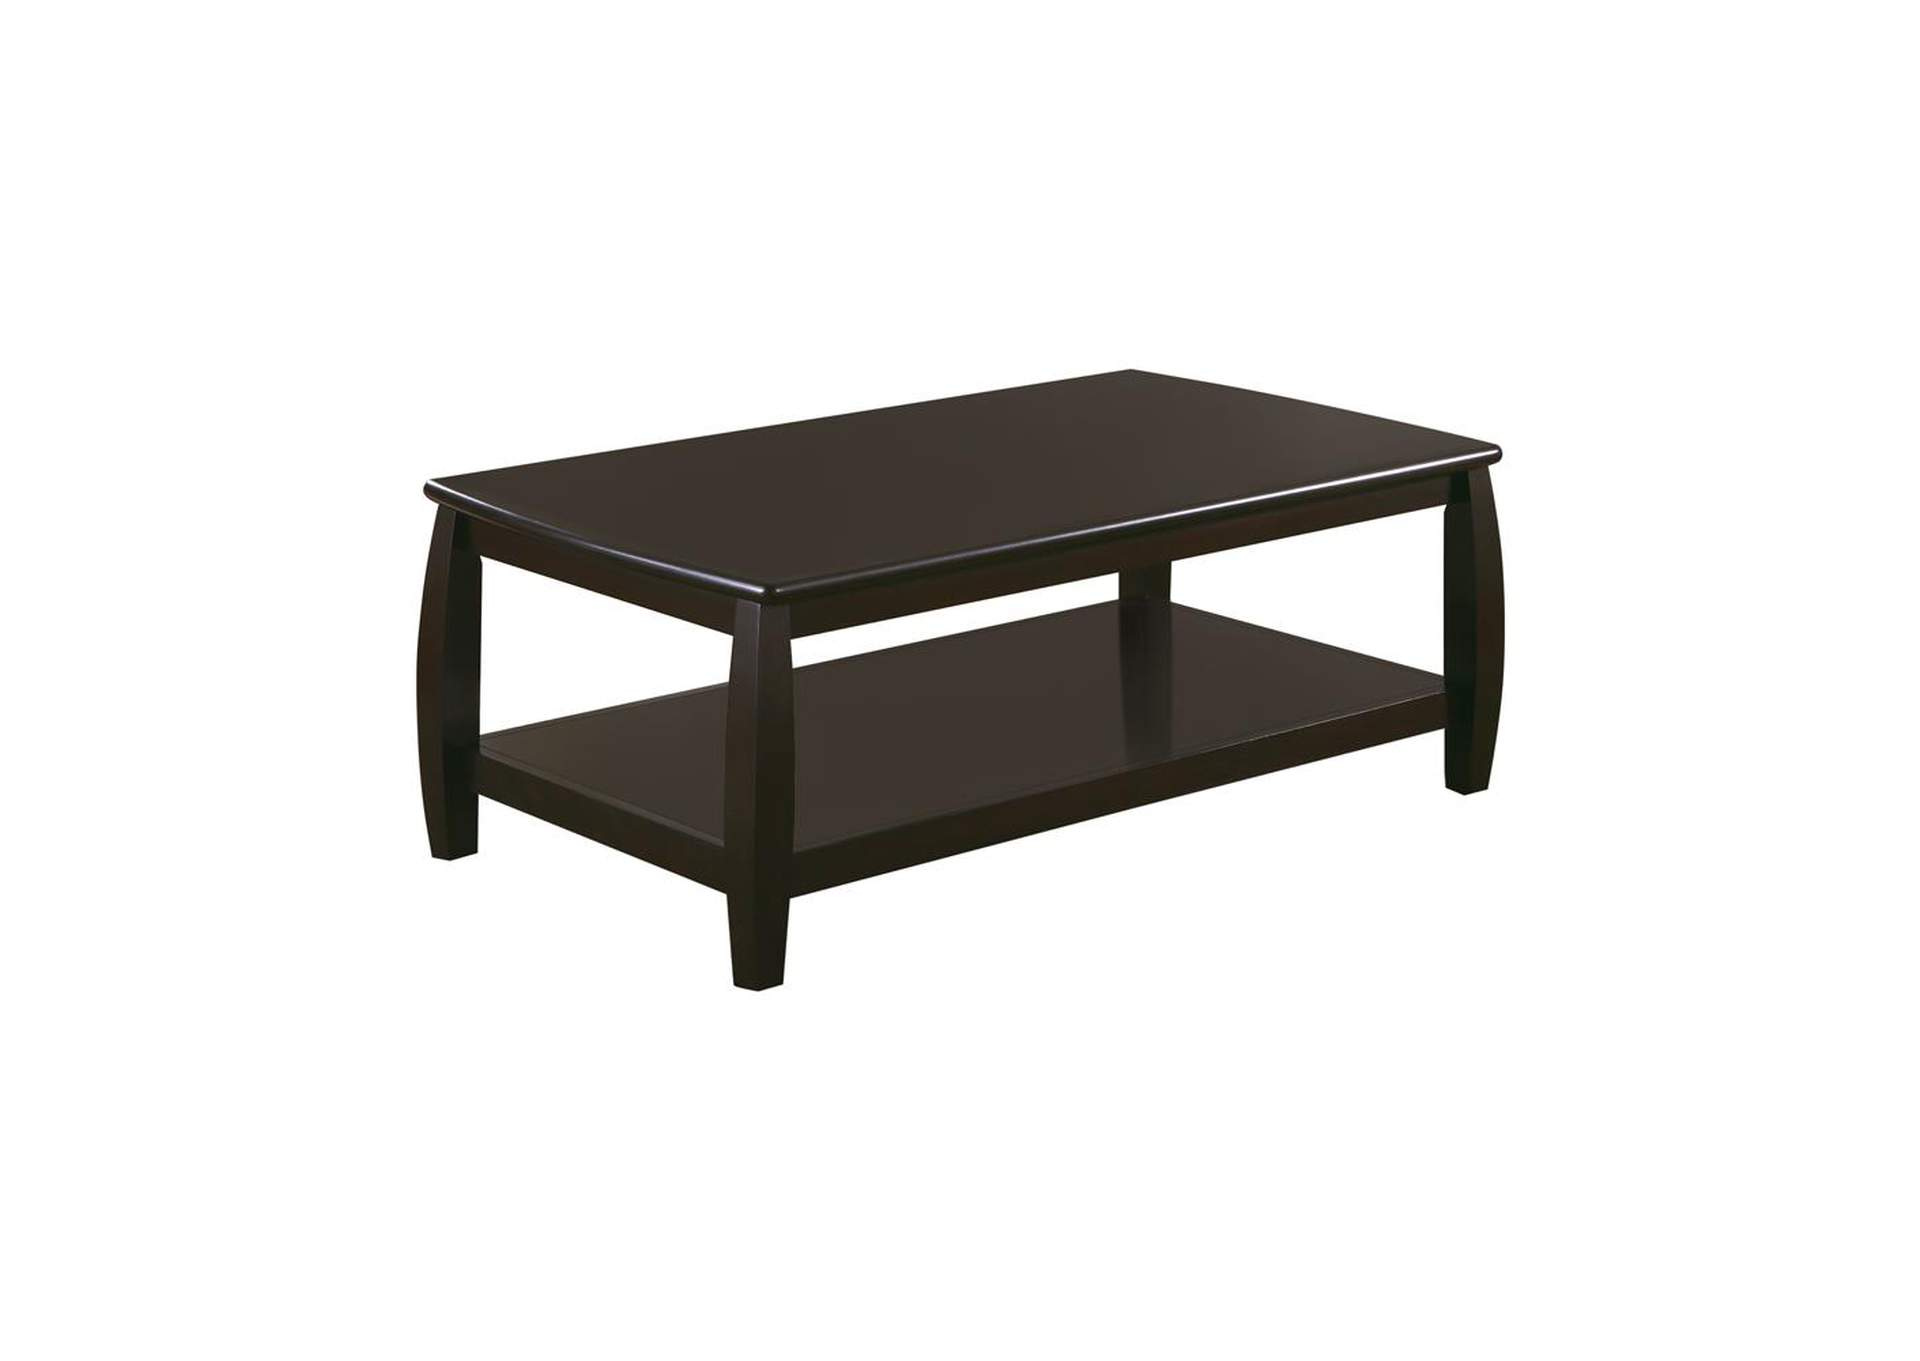 Cappuccino Wood Top Espresso Coffee Table,Coaster Furniture